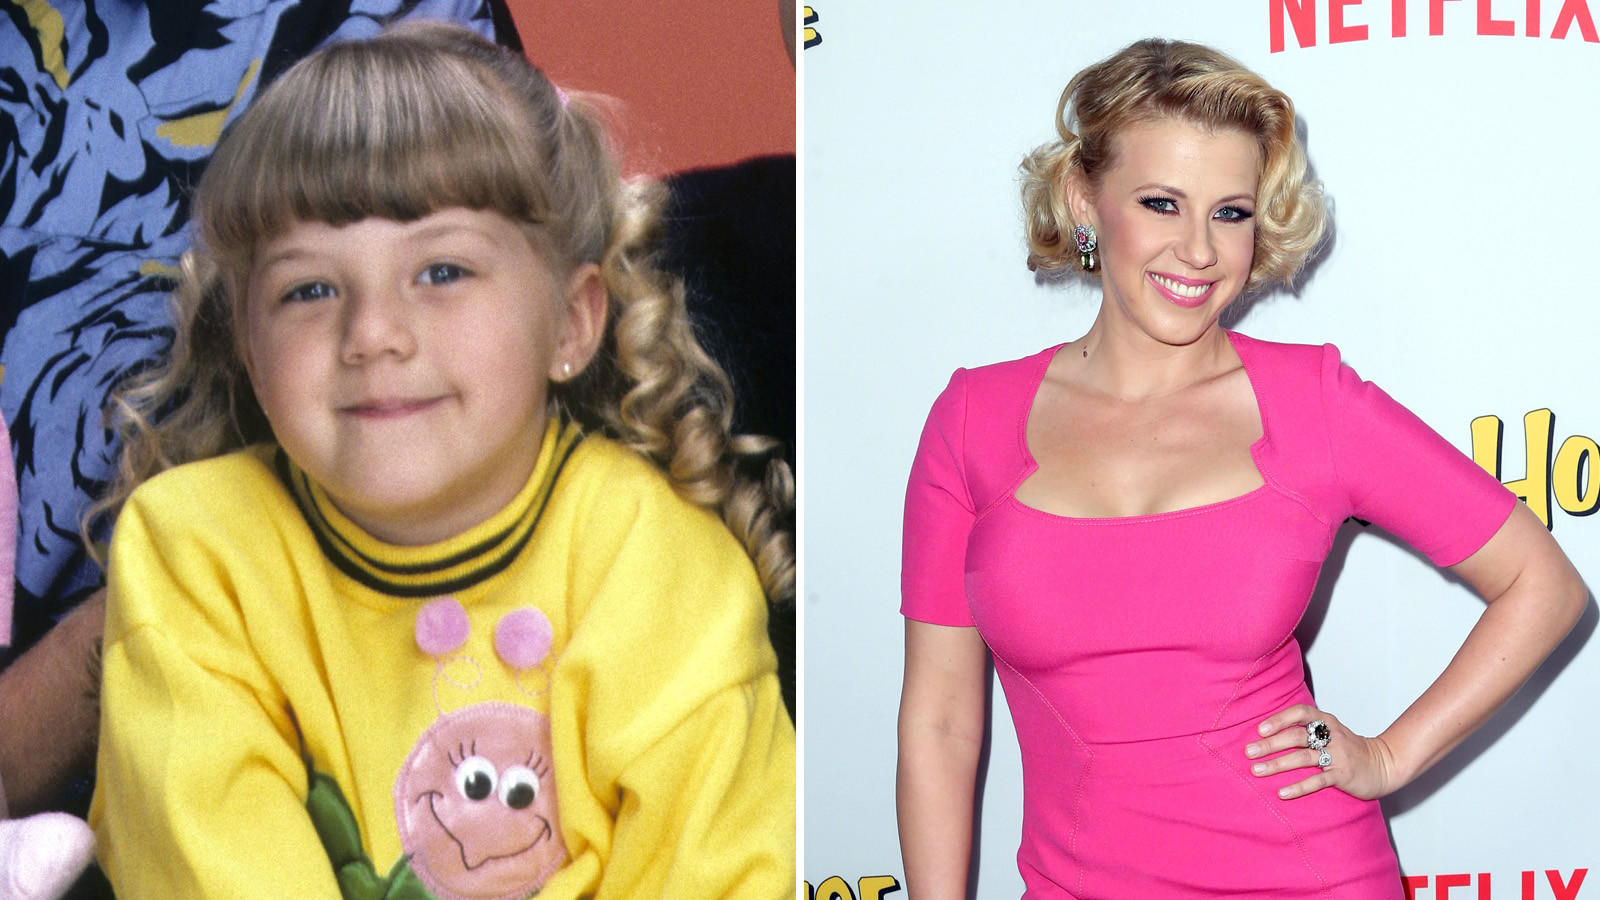 Jodie Sweetin played Stephanie Tanner.